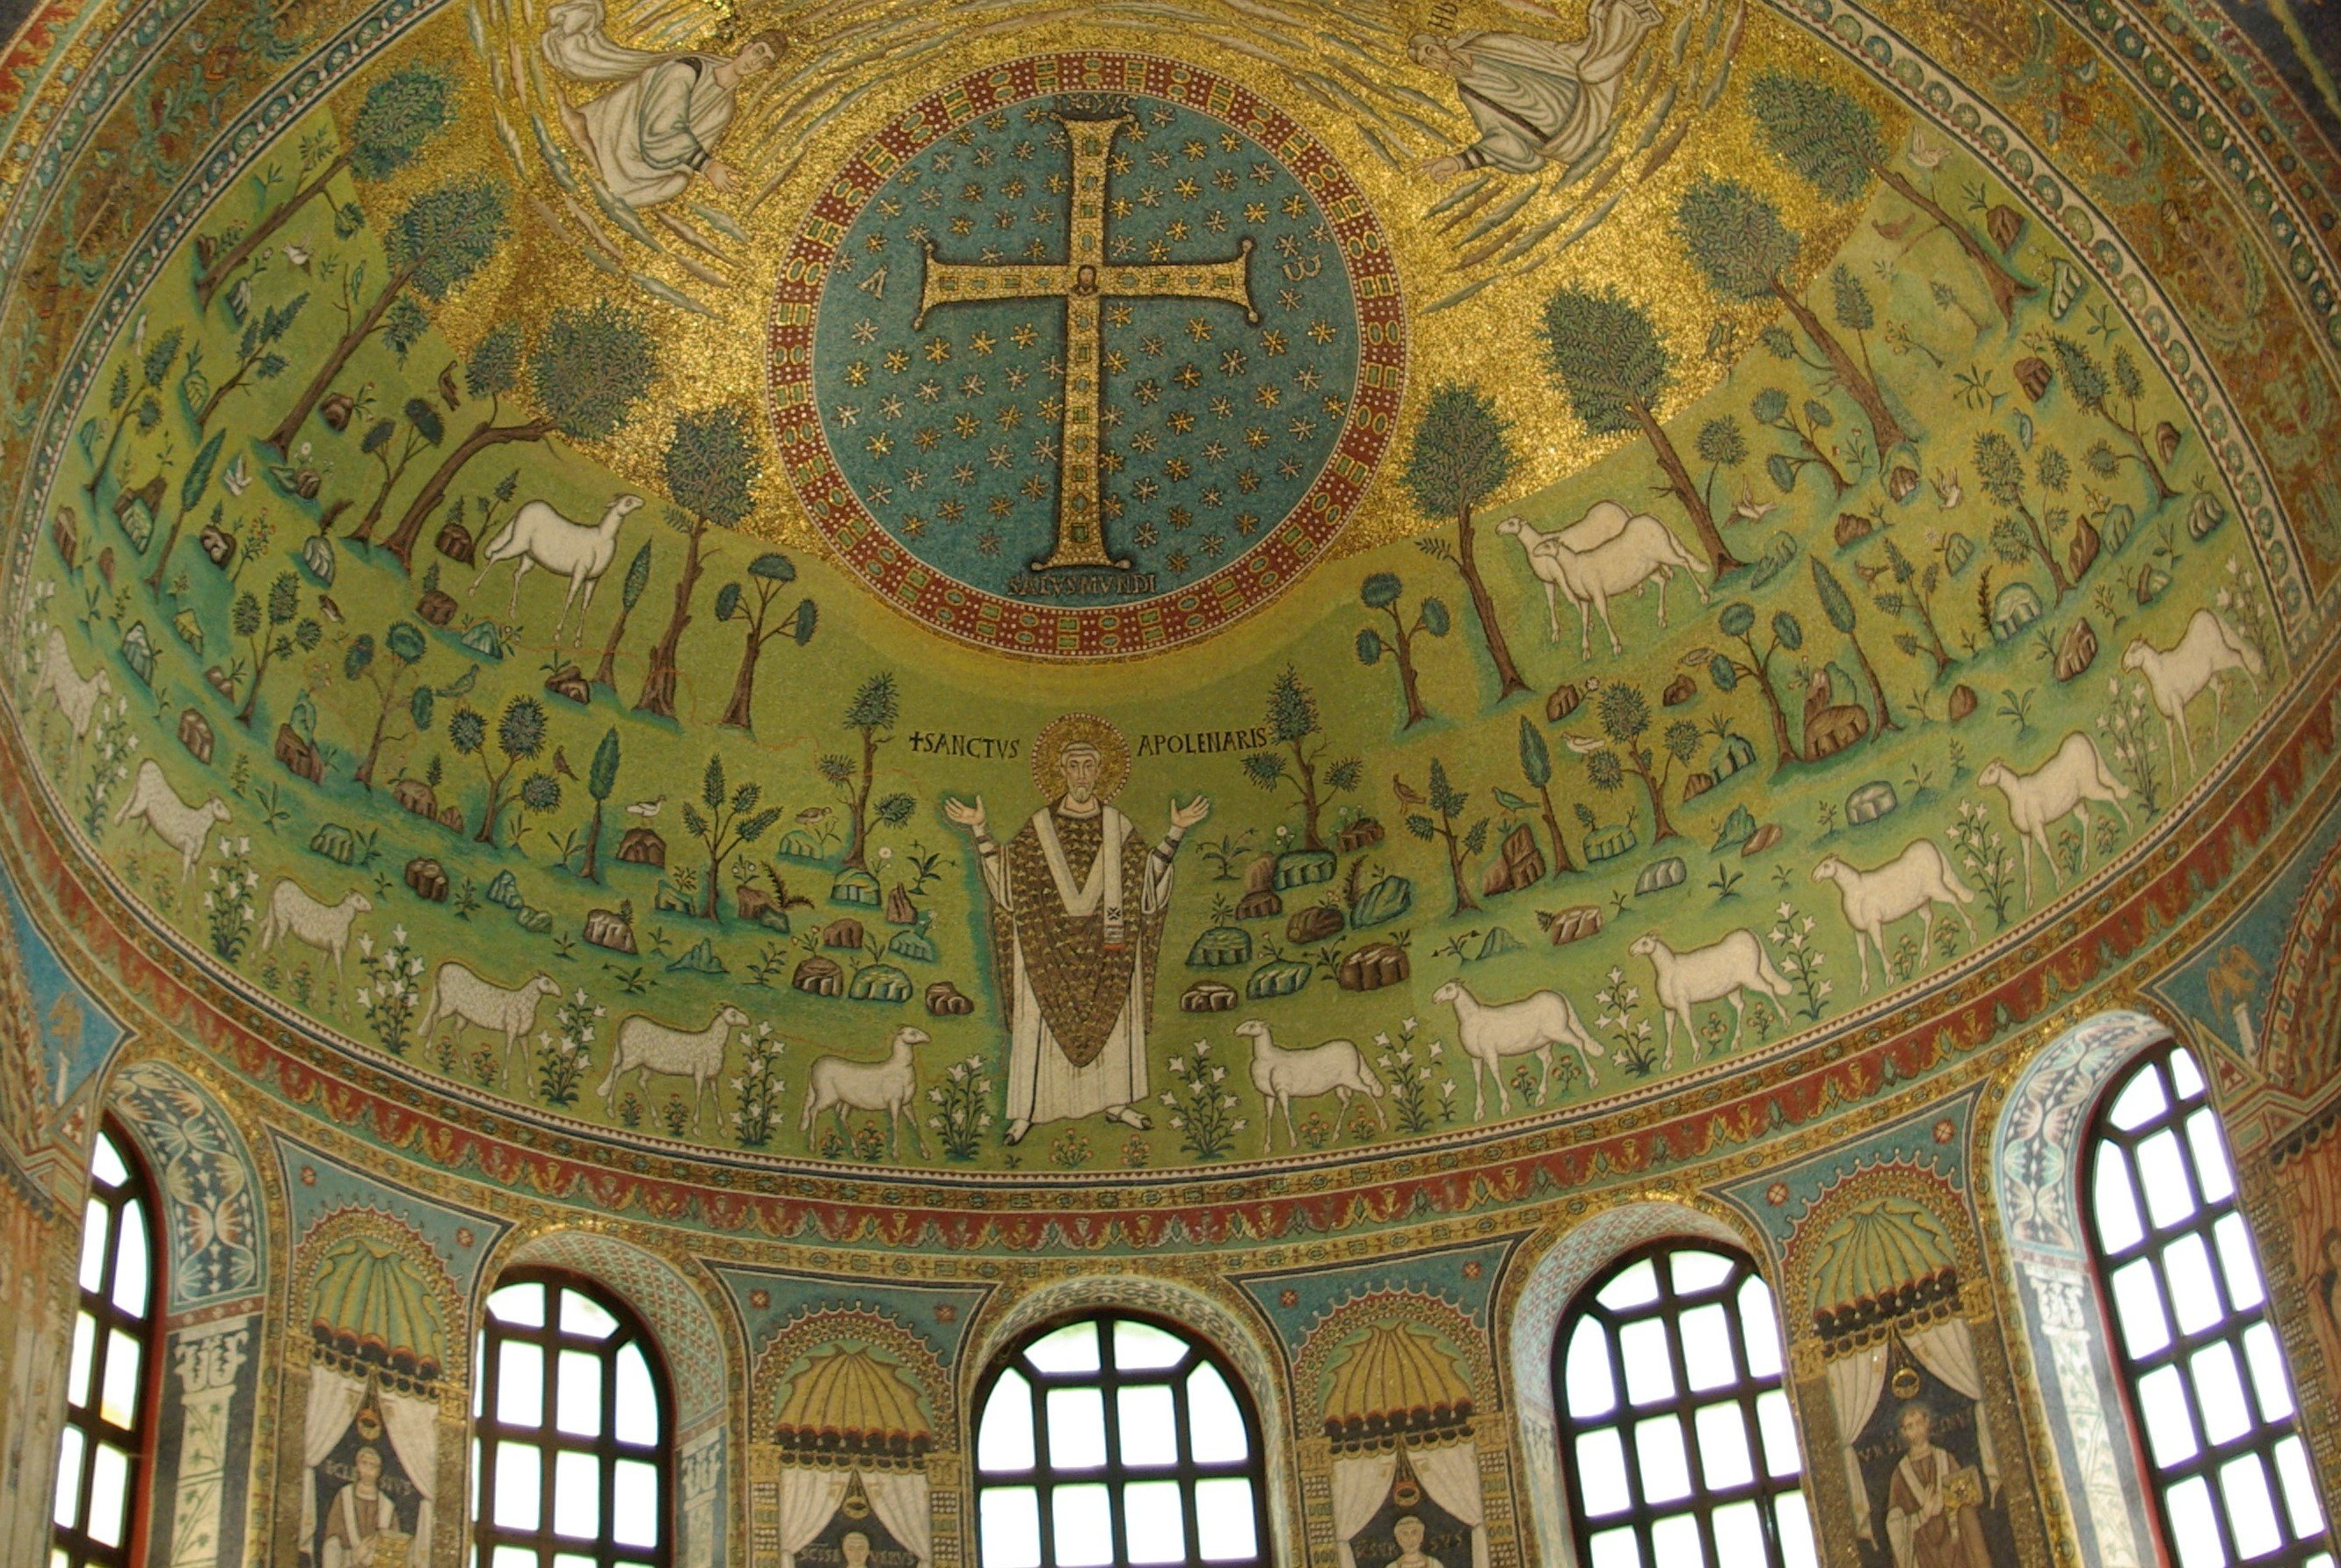 The 6th century Byzantine mosaic in the apse of the basilica of Sant'Apollinare in Classe (Ravenna, Italy) (Wikipedia)